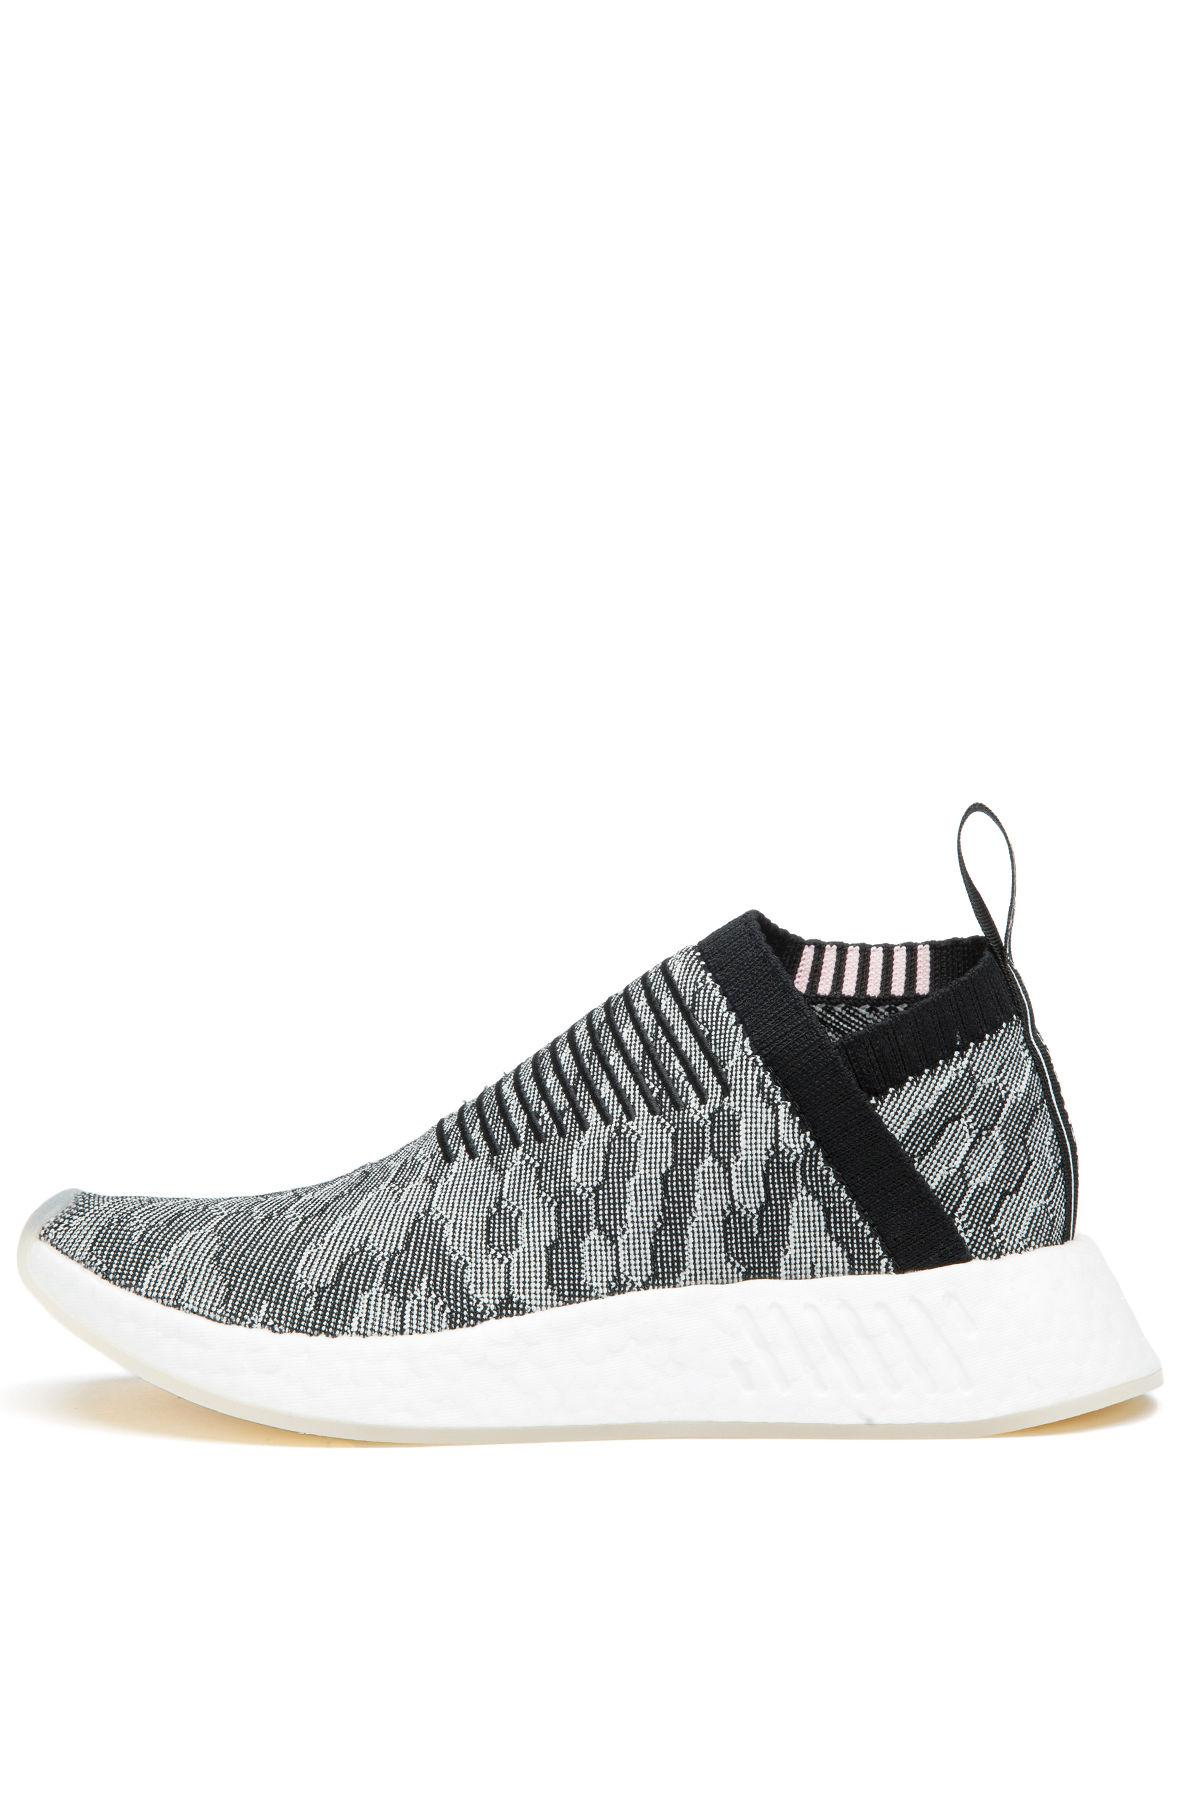 buy popular 0c38c 56055 Lyst - Adidas The Womens Nmdcs2 Primeknit In Black And Wonde